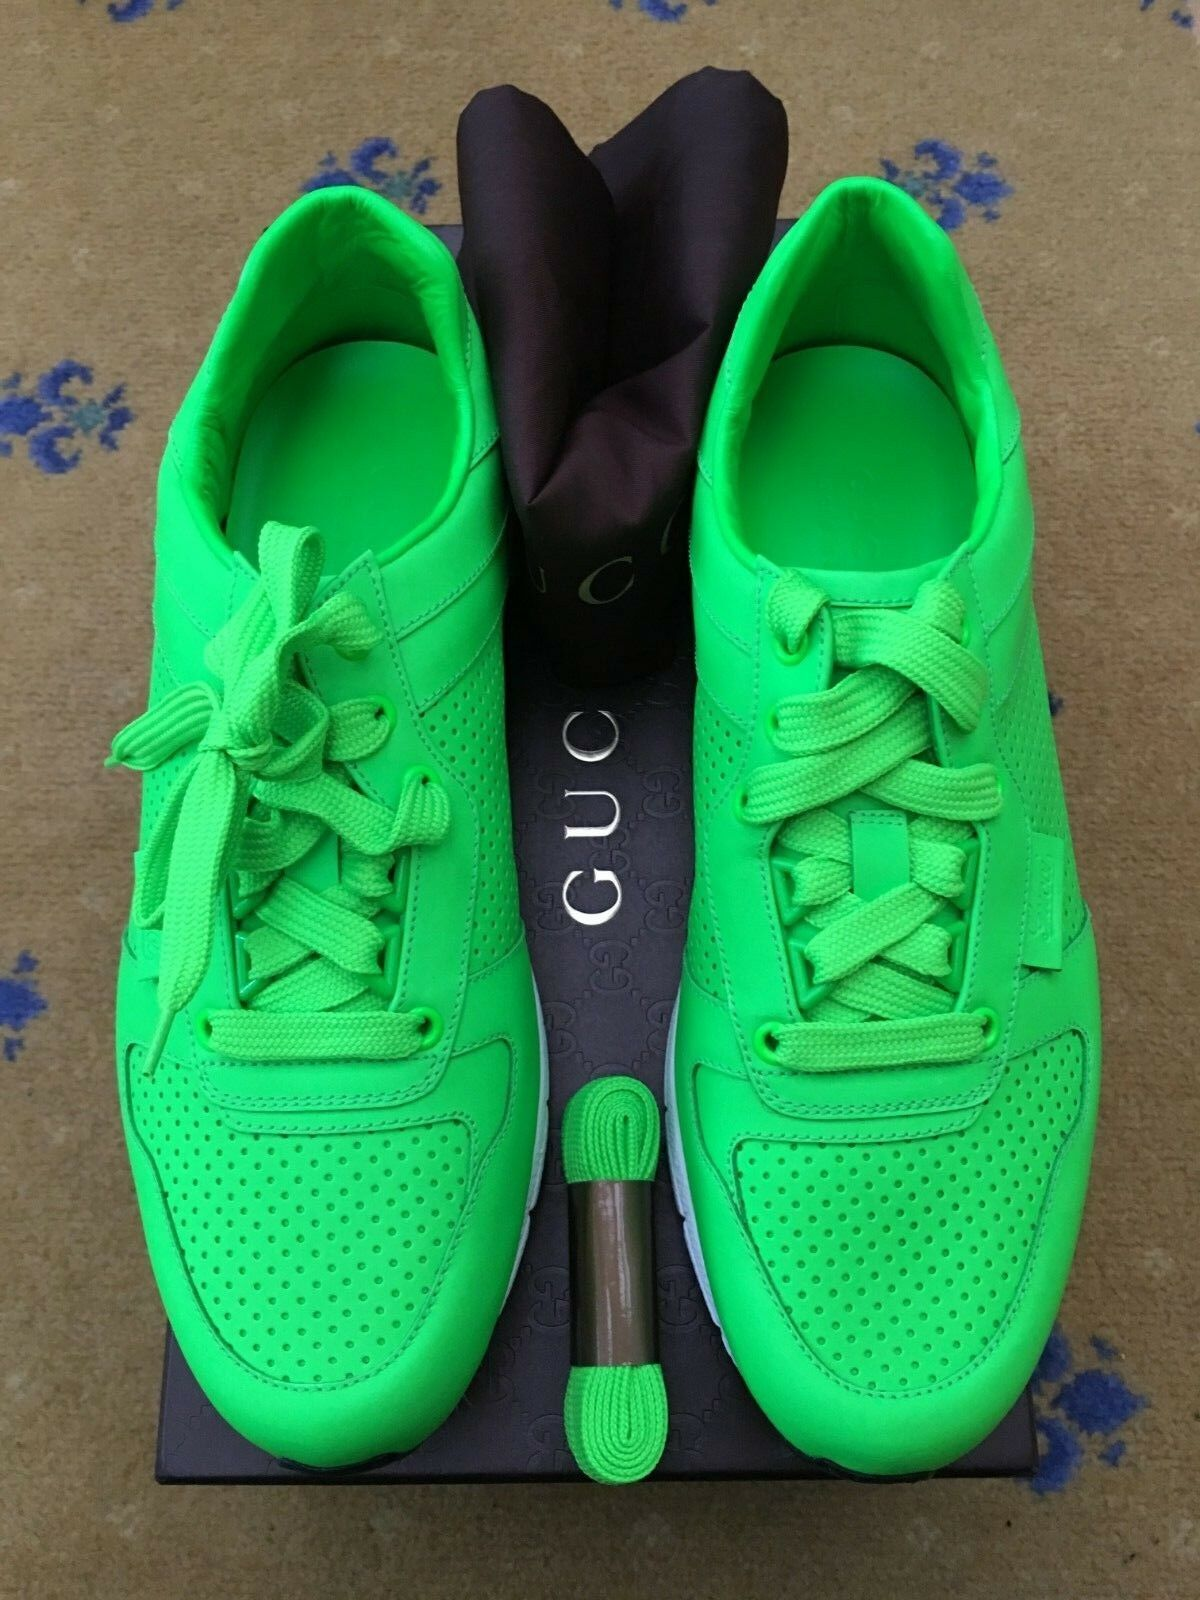 outlet store 4f23e 20c77 New Gucci Mens Trainer Sneaker Green Leather Shoes UK 8.5 US 9.5 EU 42.5  Neon